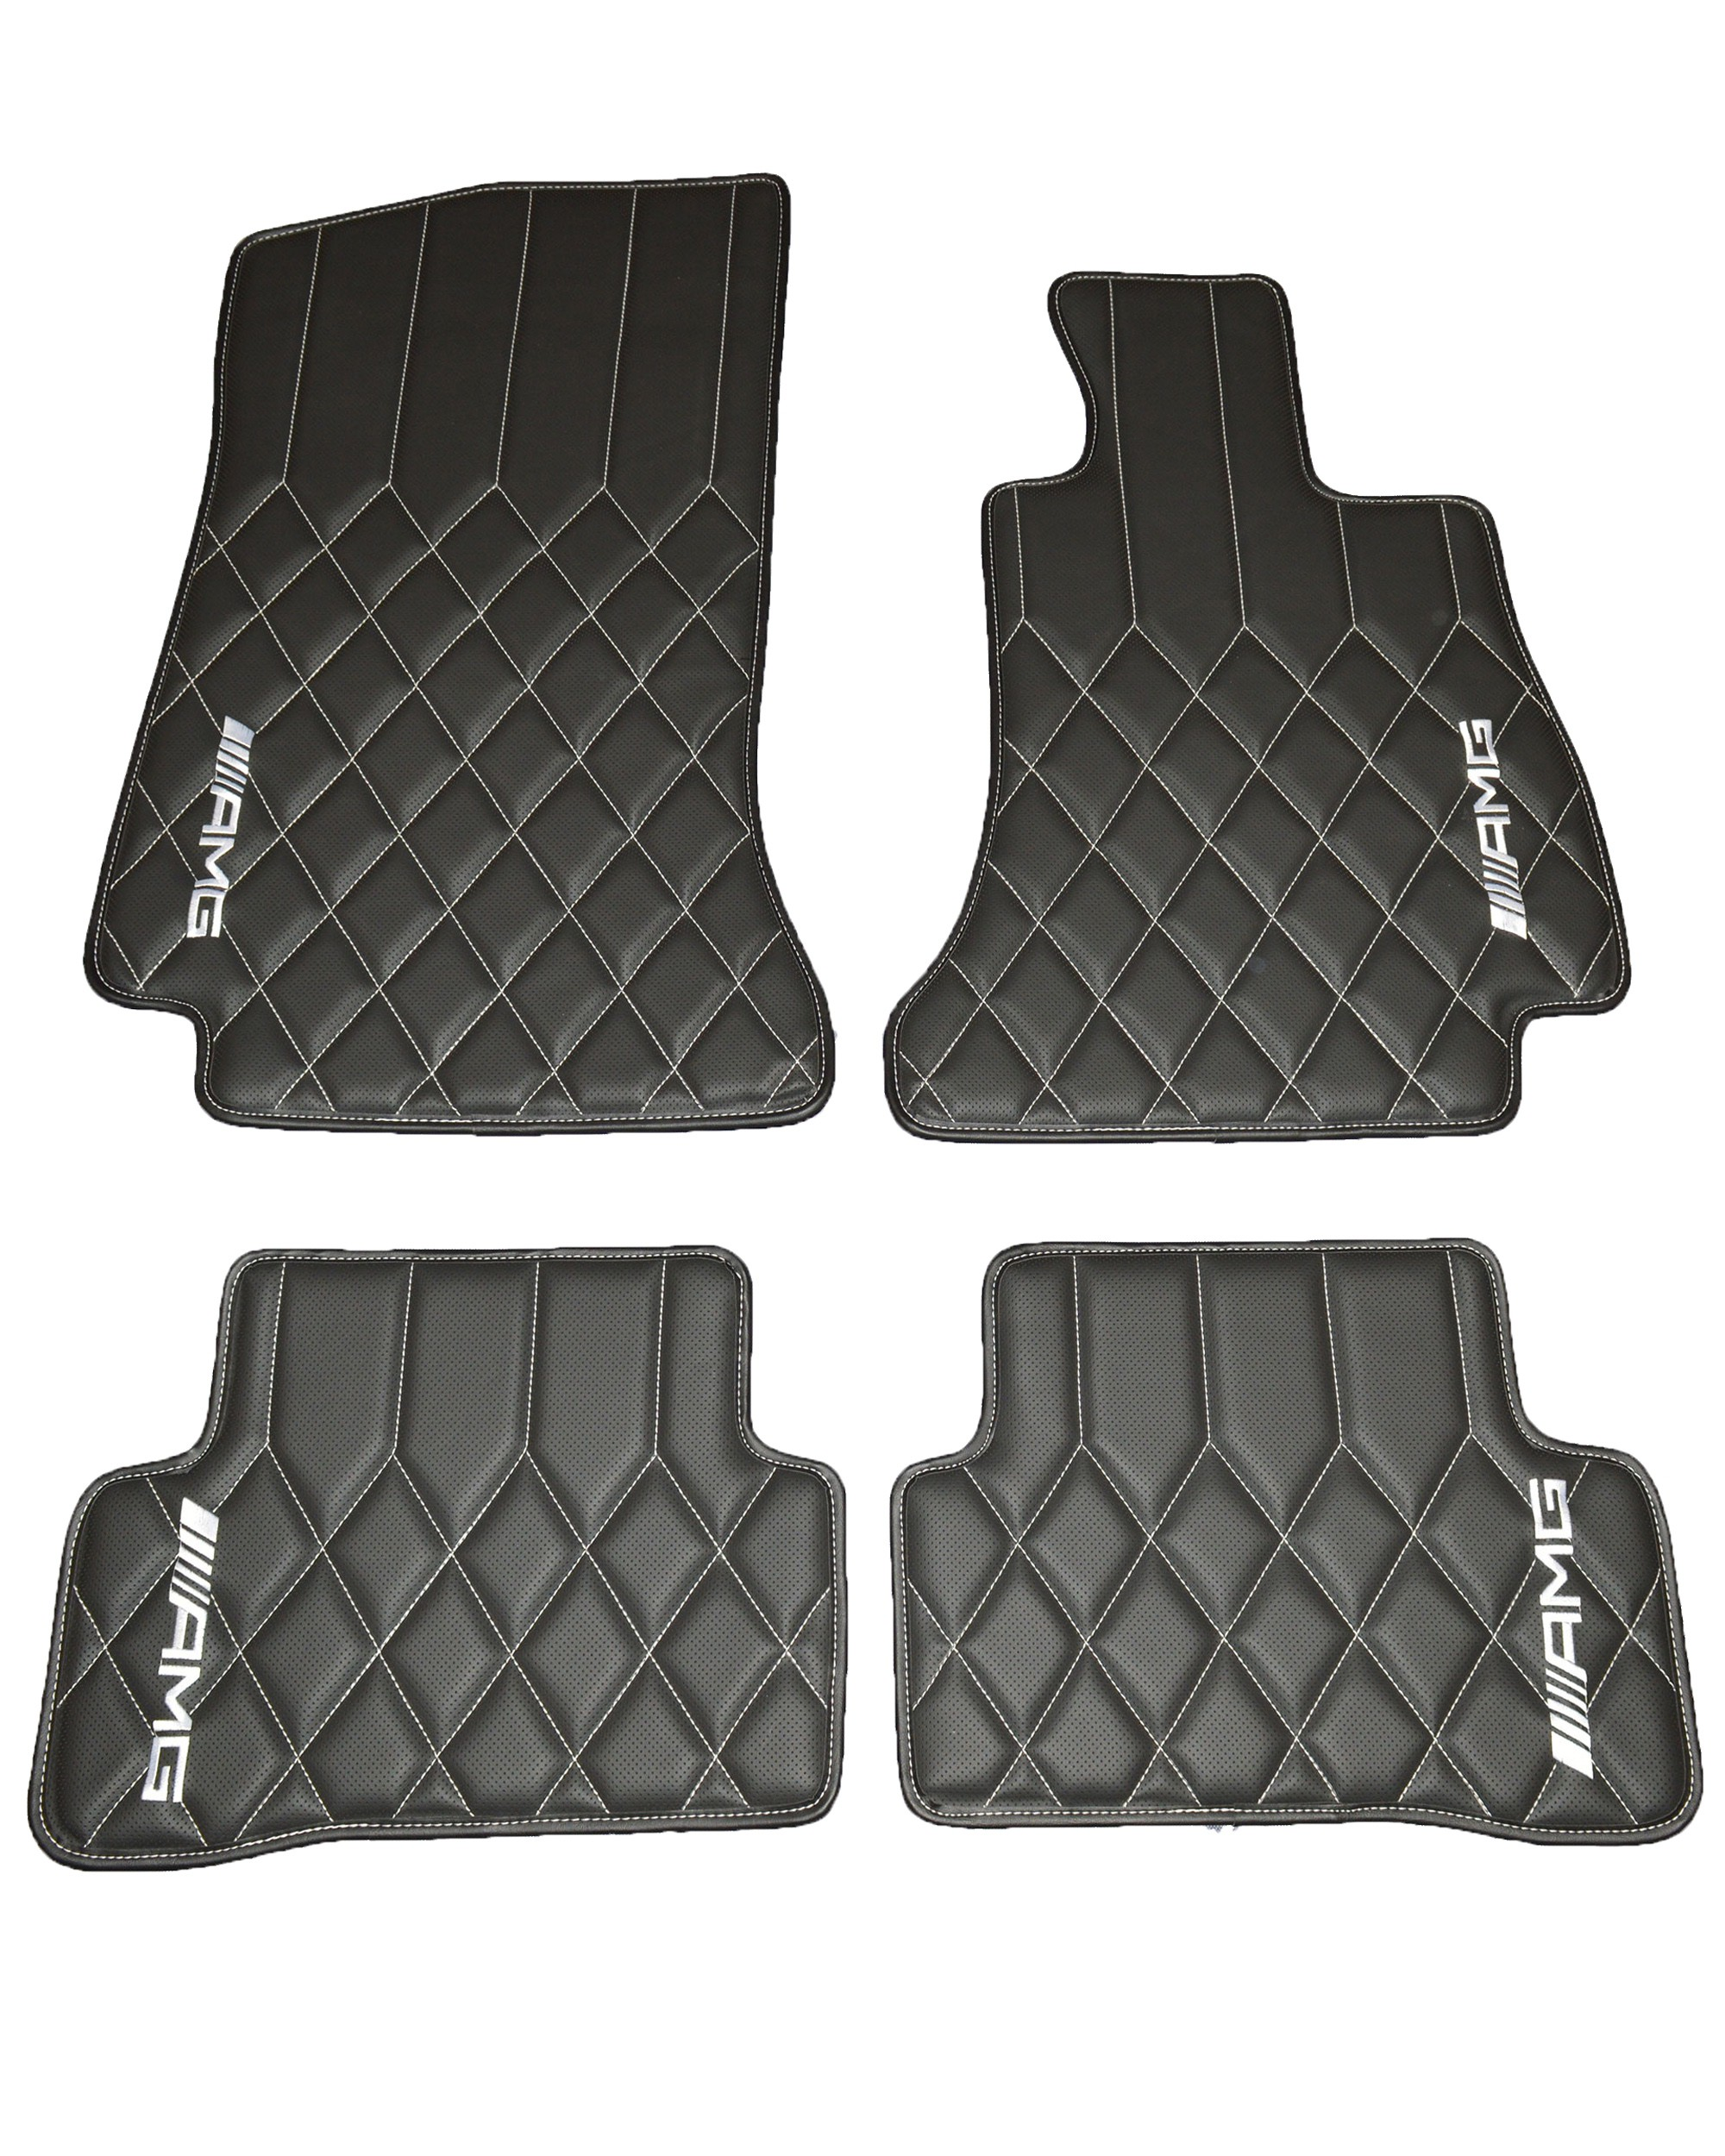 Mercedes Benz C Class W205 AMG Diamond Quilted Leatherette Floor mats